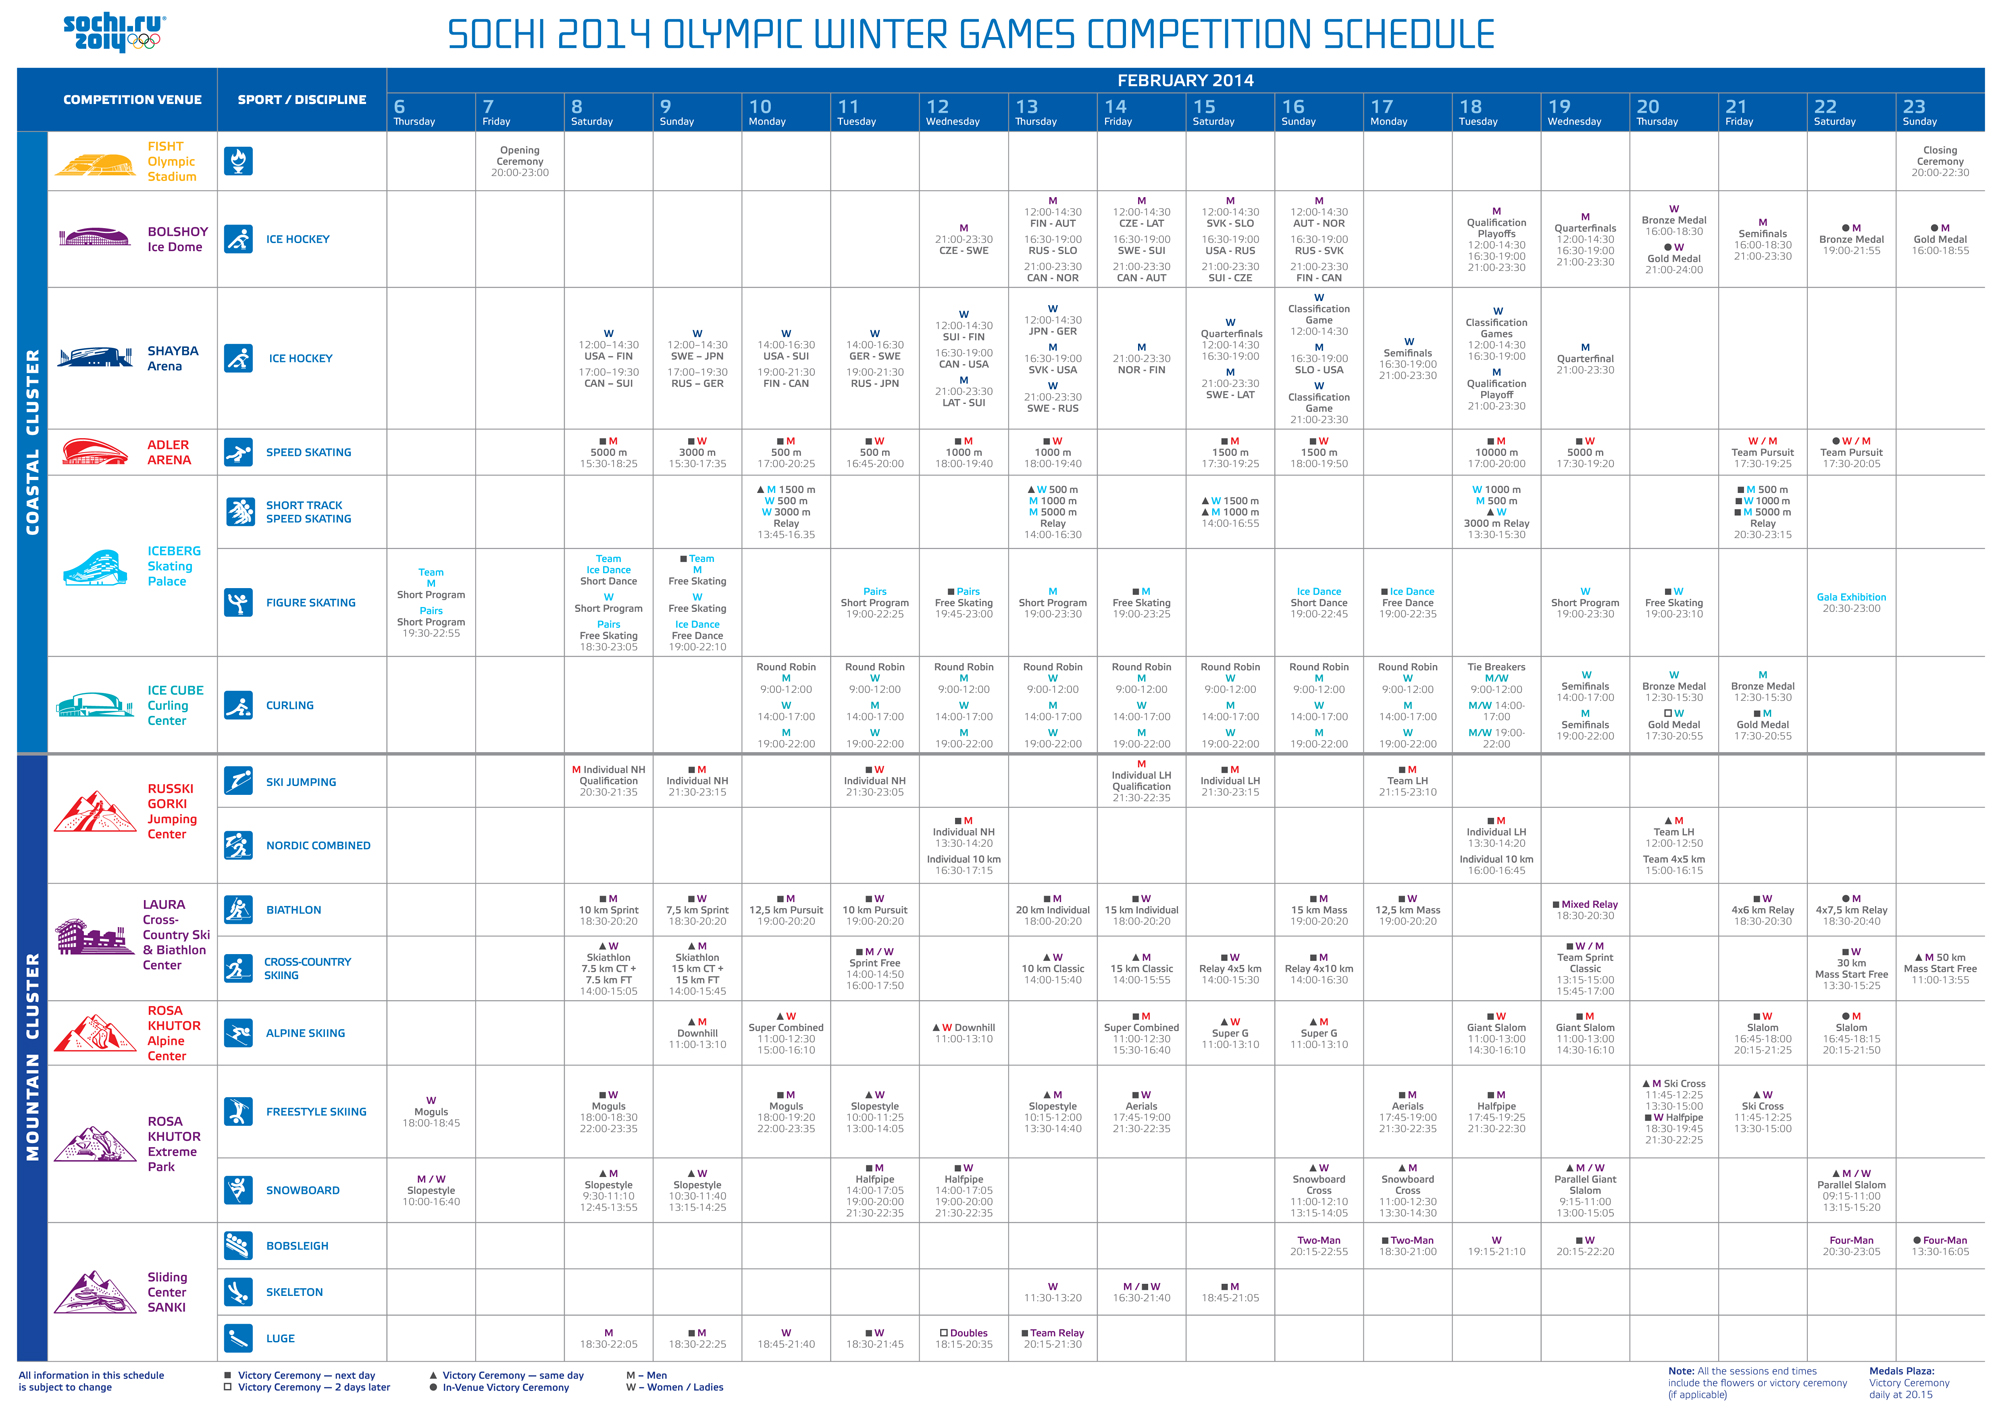 Sochi Competition Schedule